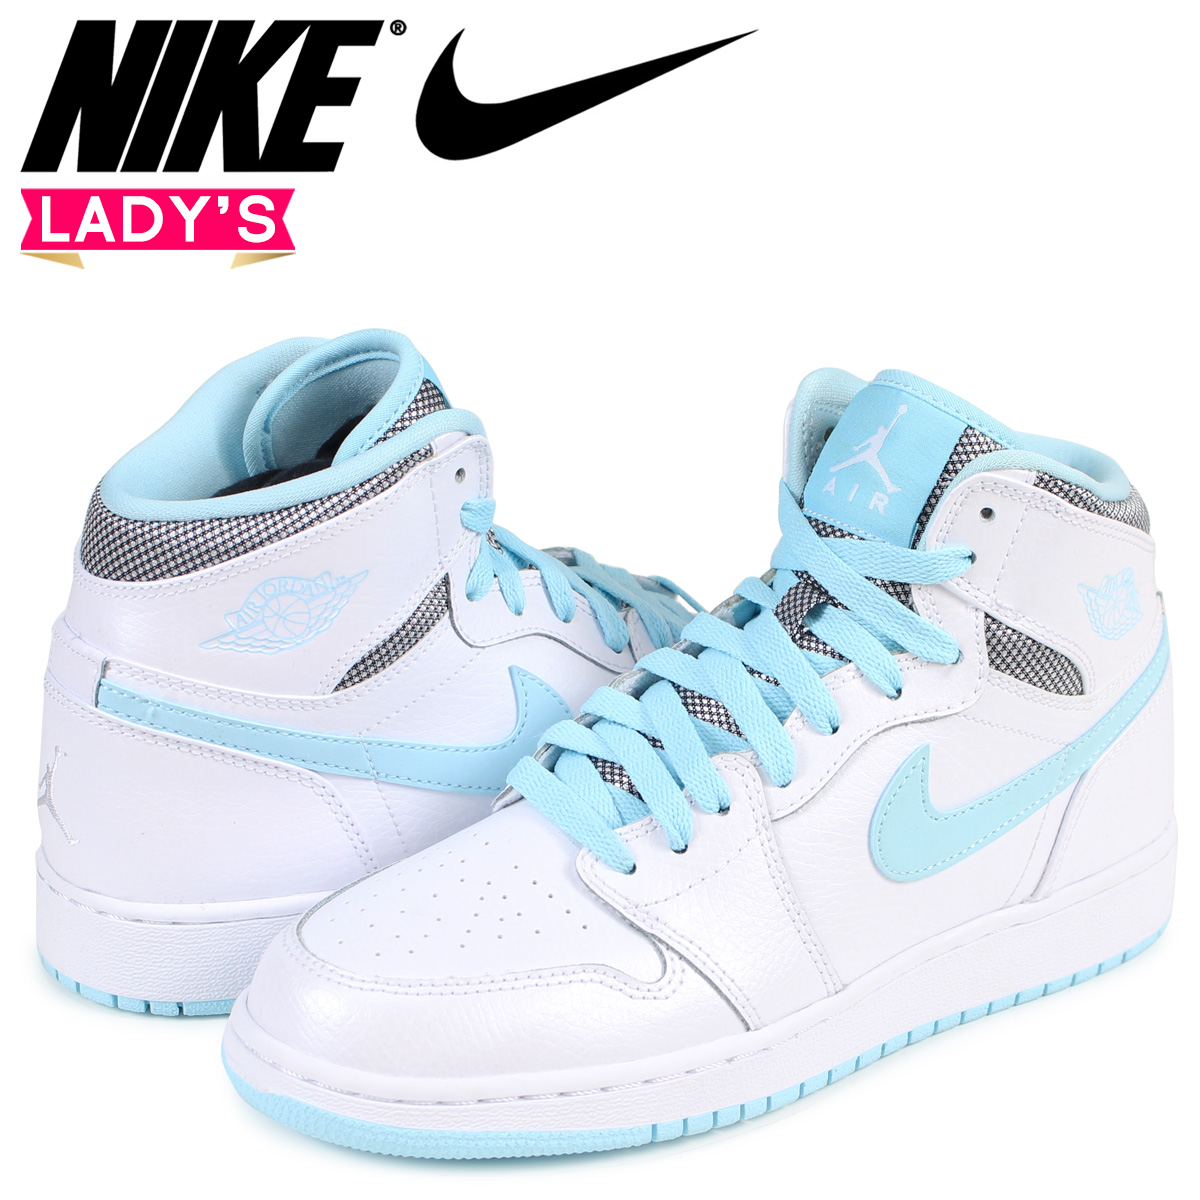 f44f152a3dc5 Nike NIKE Air Jordan 1 nostalgic lady s sneakers AIR JORDAN 1 RETRO HIGH GG  332